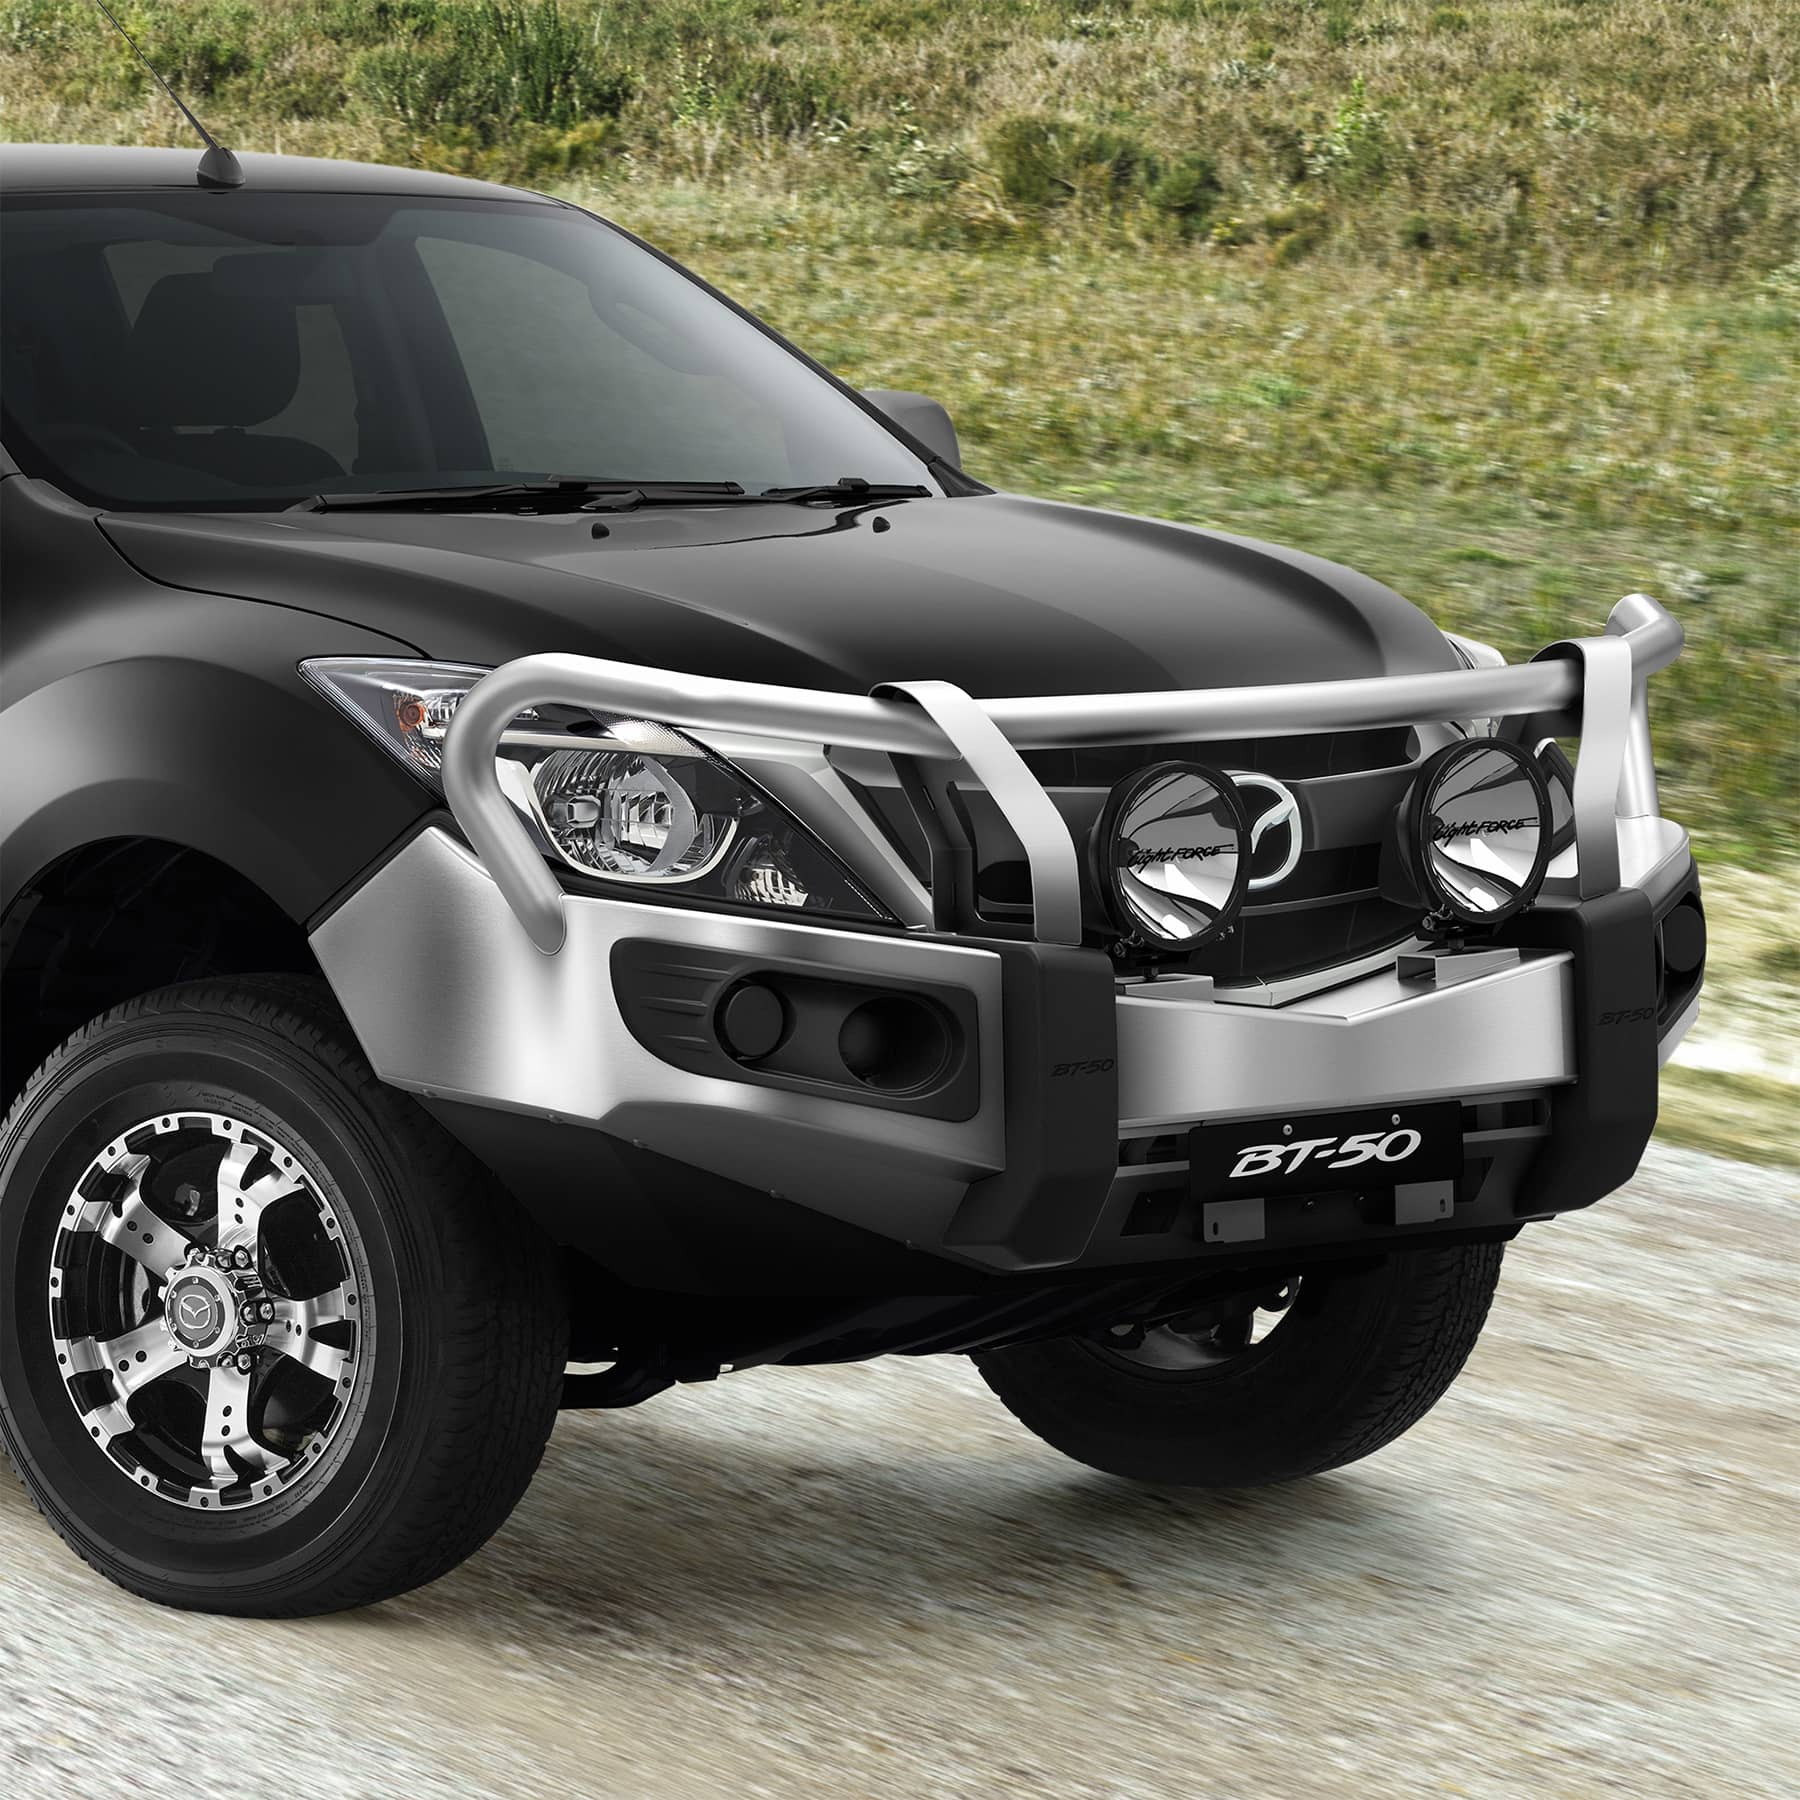 New Mazda bt-50 Vehicle